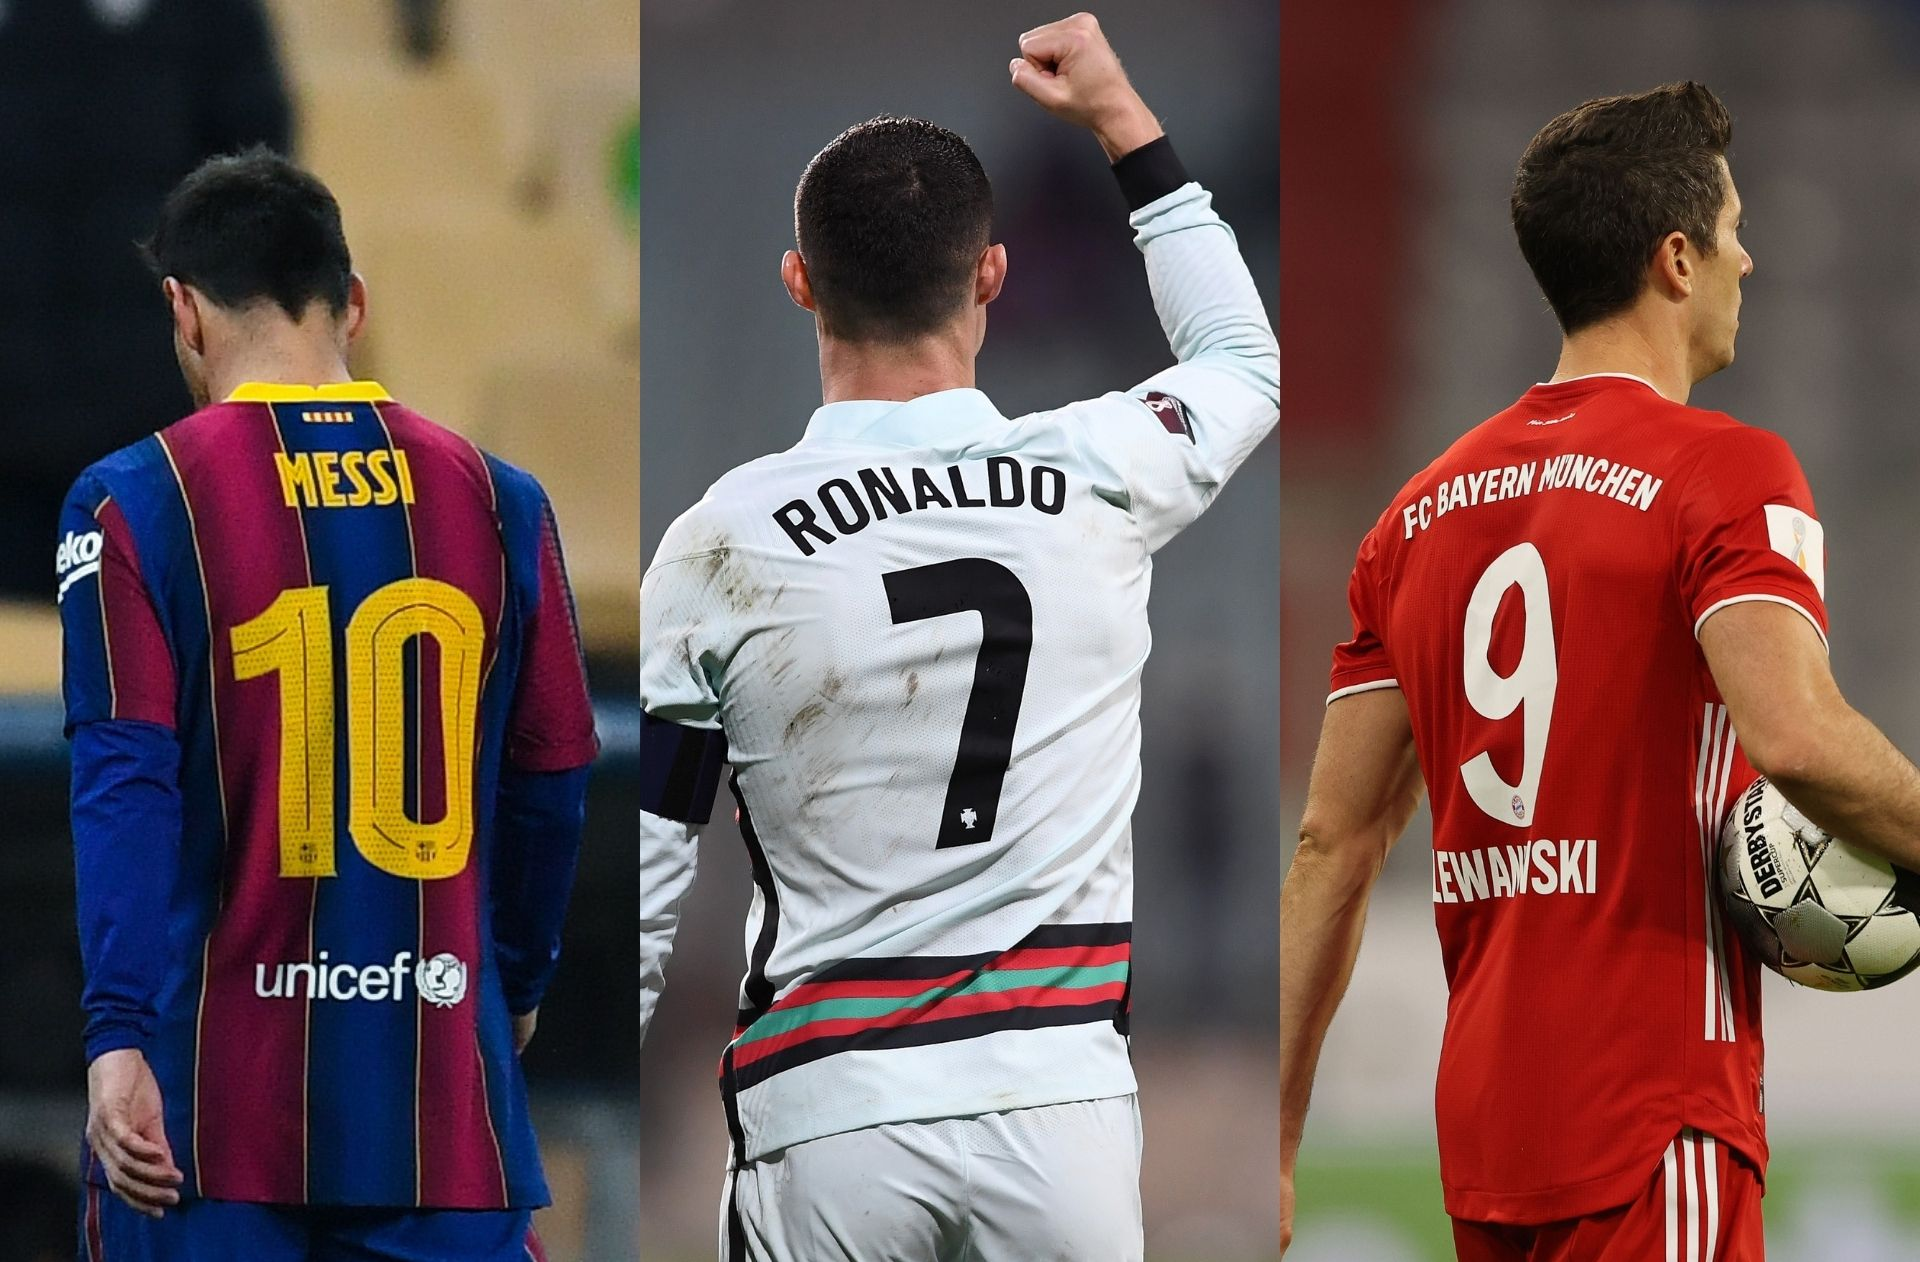 Top 10 players with the most goals and assists combined in 2021